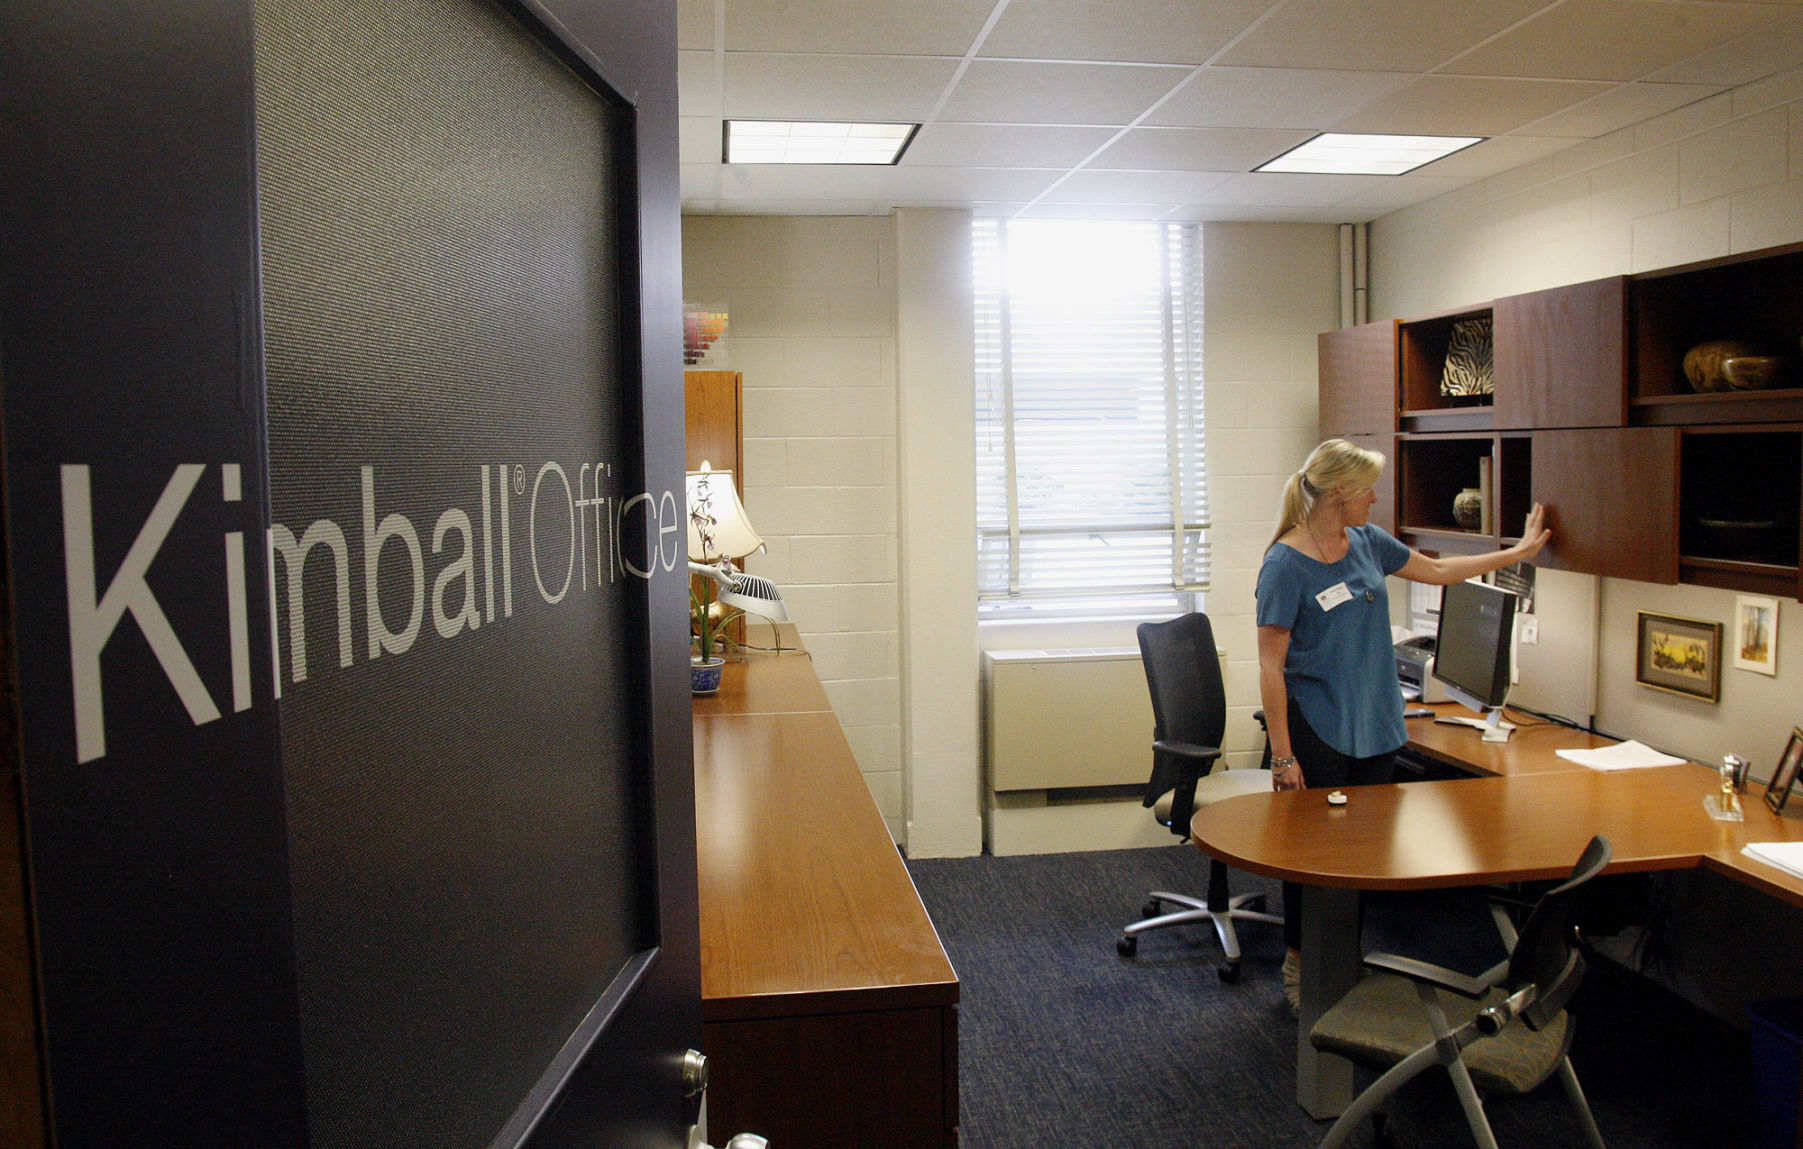 Auburn interior design school offices get remodeled  transform into     AU Interior Design